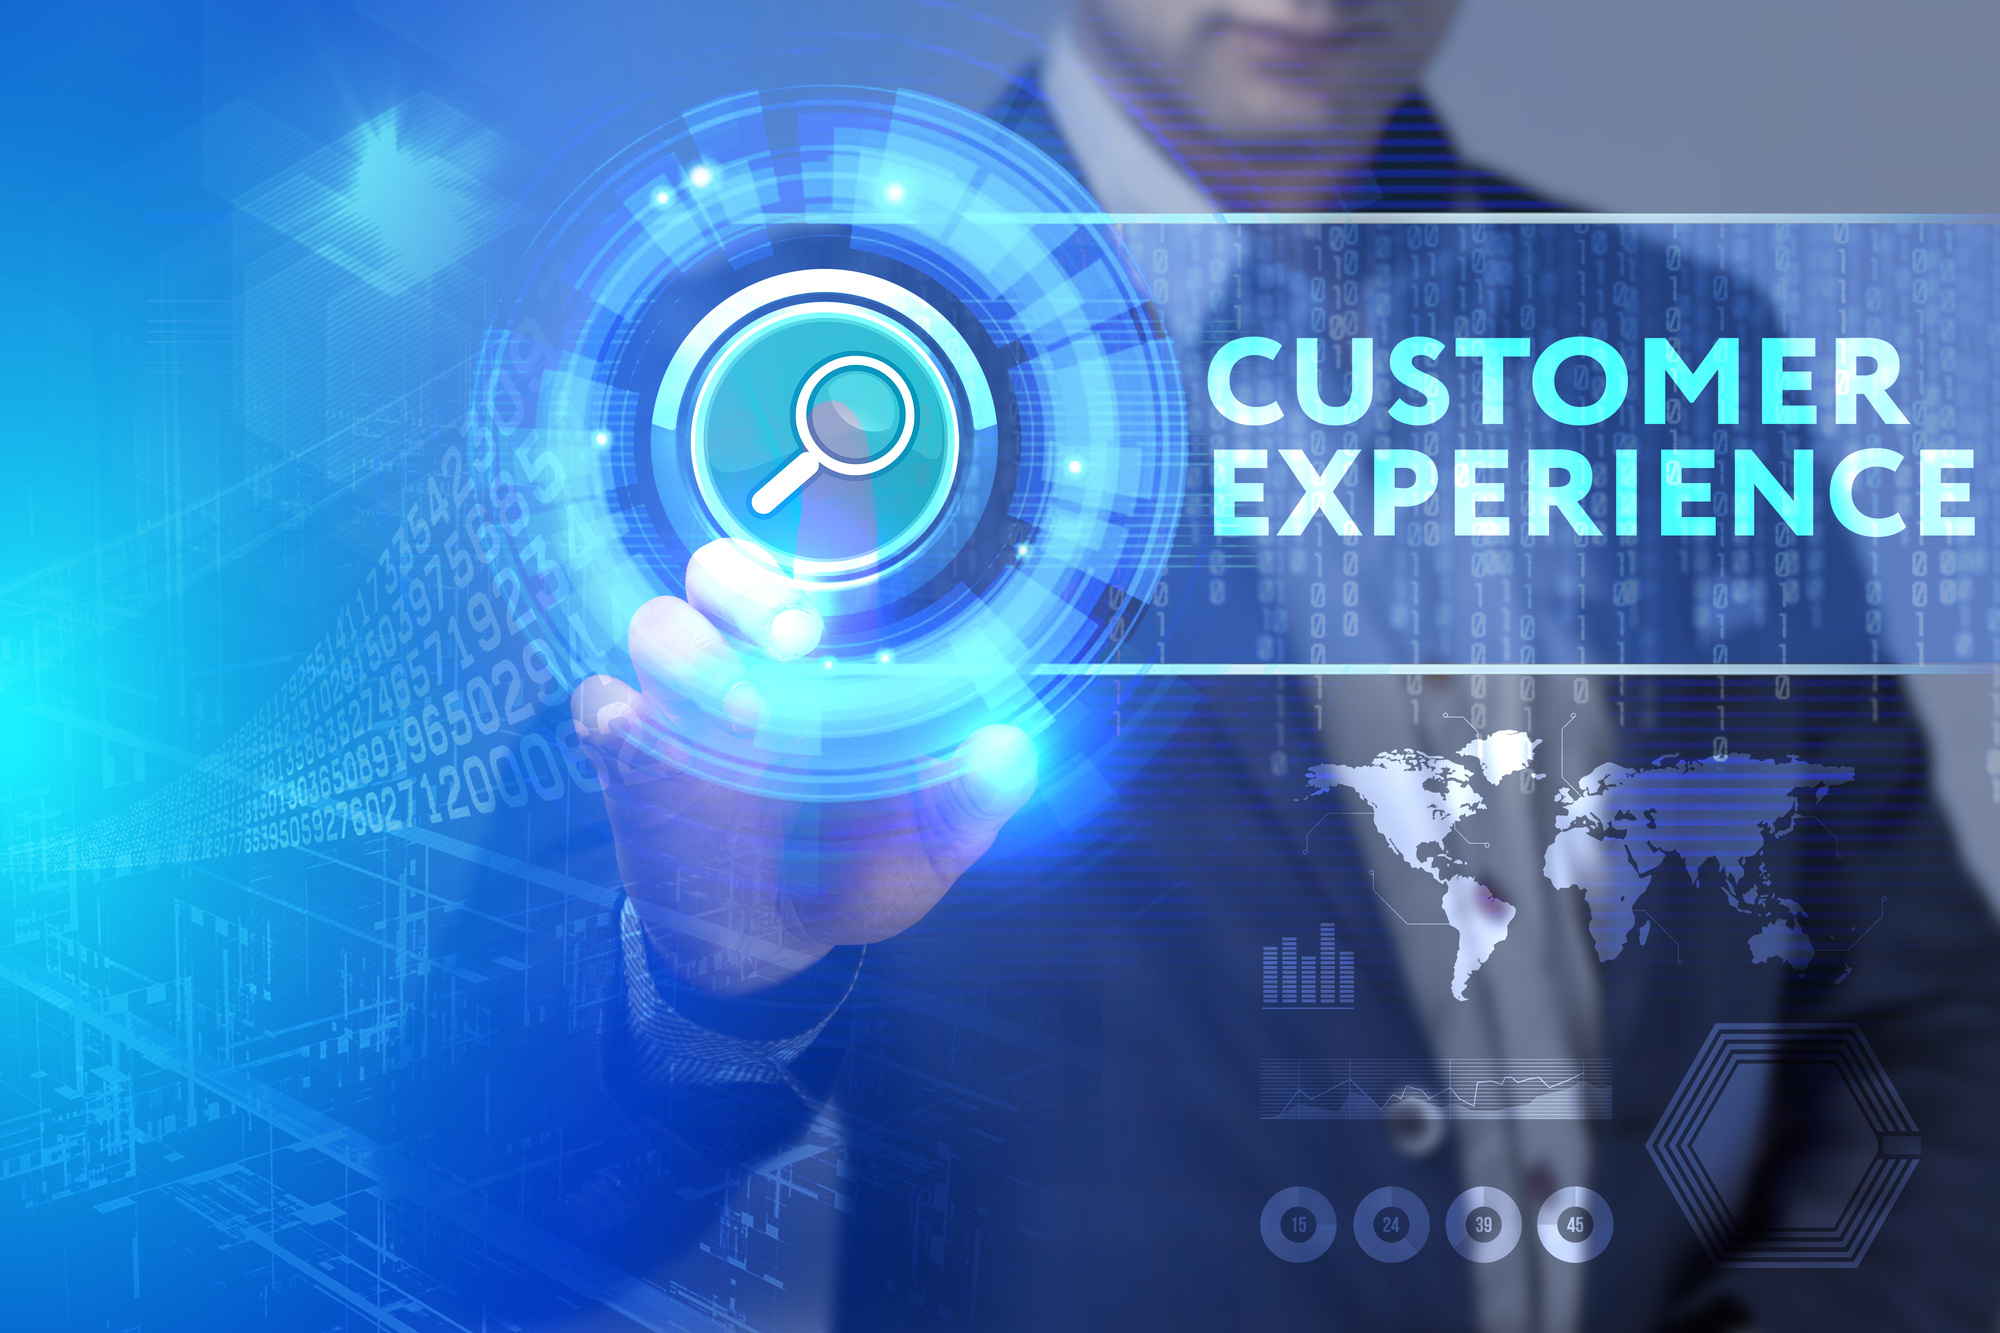 Tips to Help You Deliver a Personalized Customer Experience